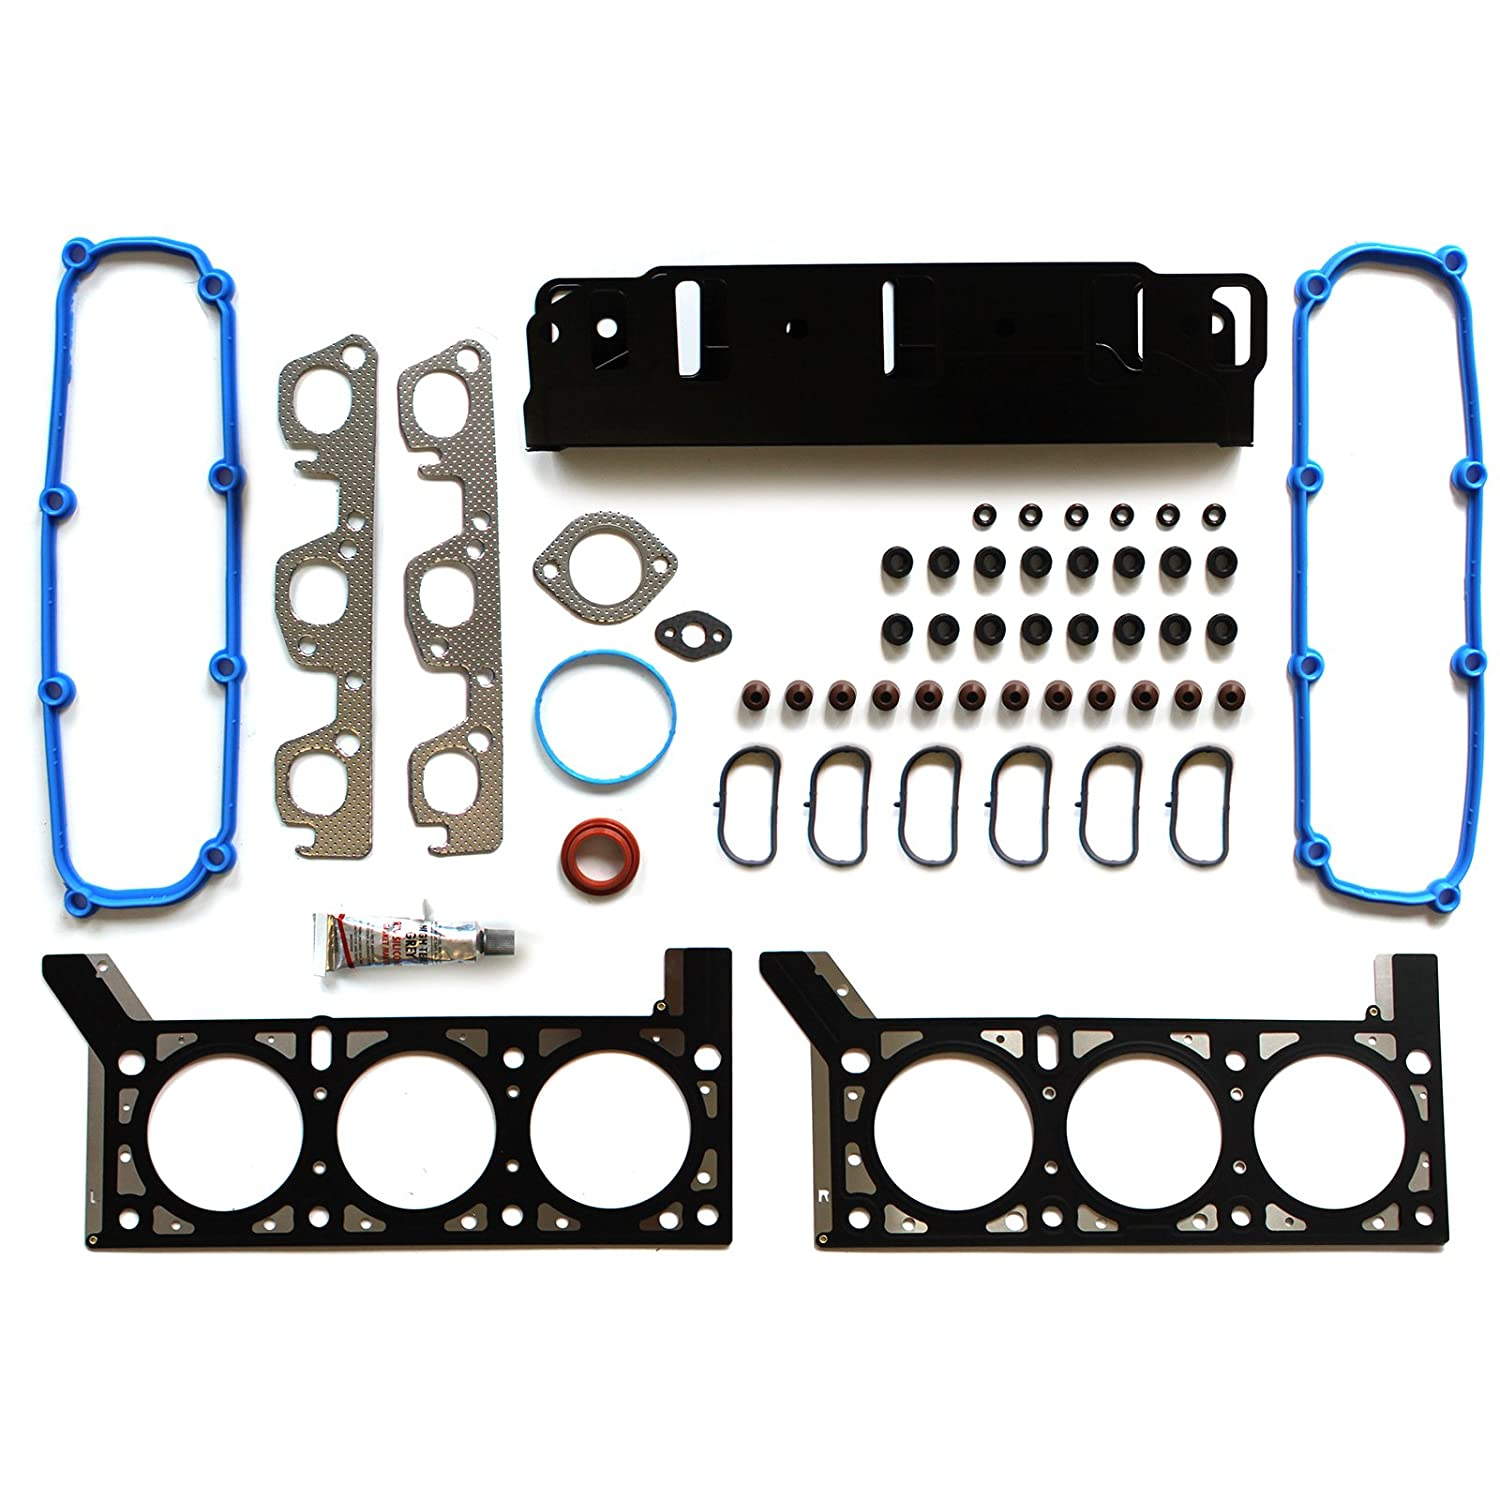 ECCPP Replacement for Head Gasket Set for 2007-2011 Jeep Wrangler V6 VIN 1 12V 3.8L Engine Head Gaskets Kit